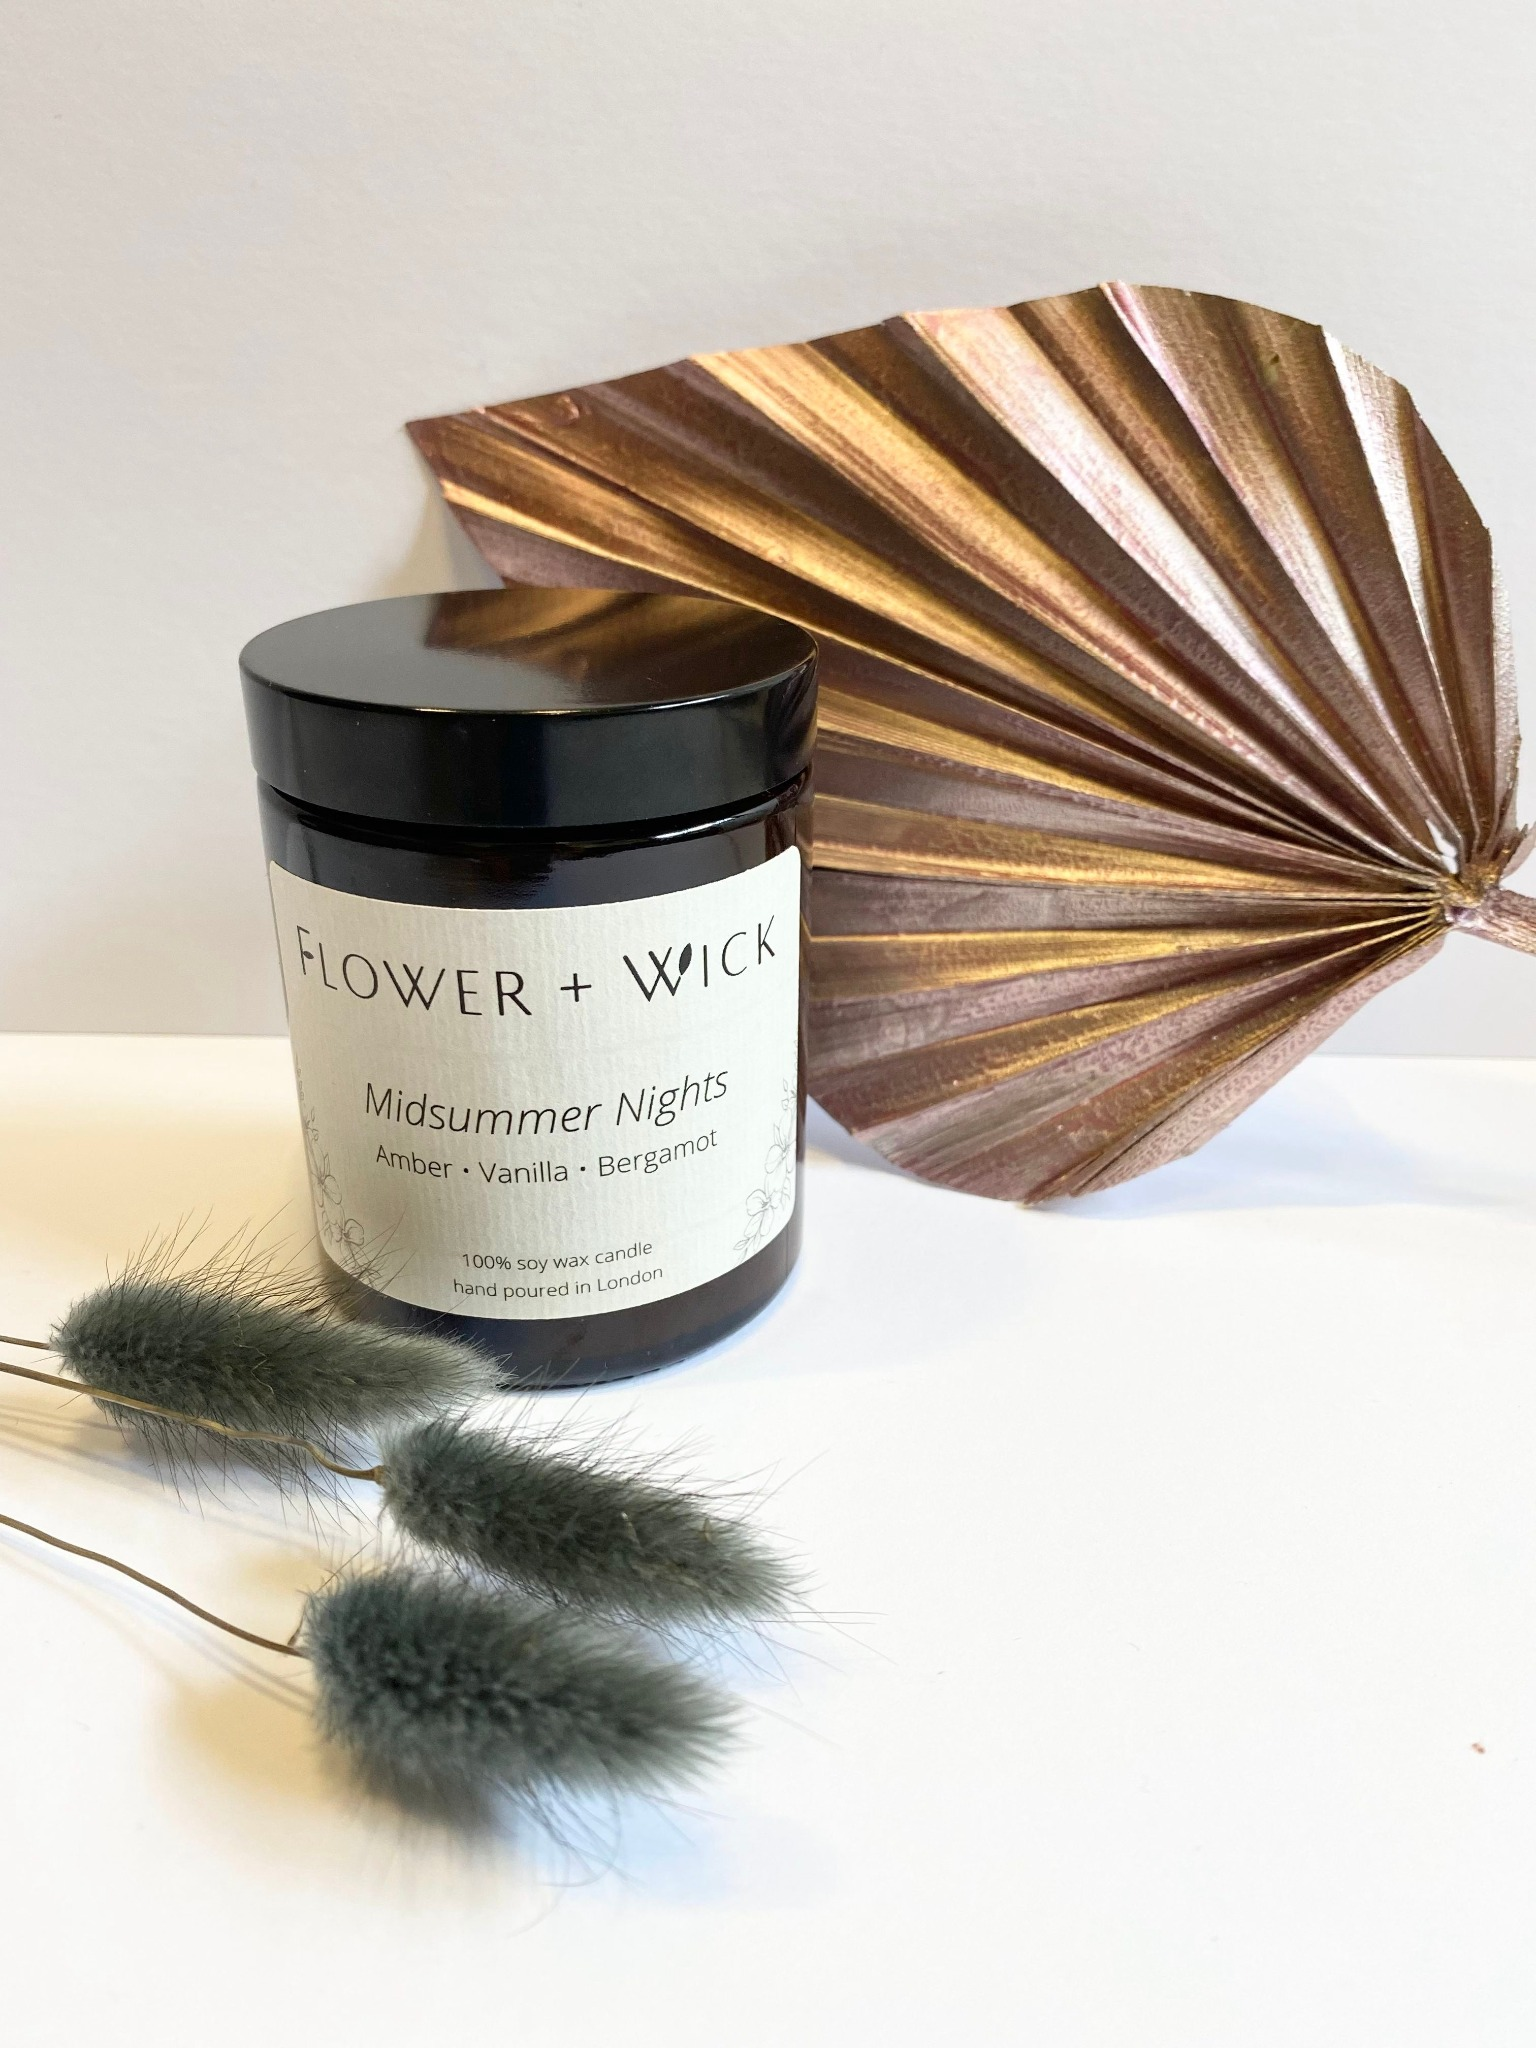 Flower + Wick: Midsummer Nights scented soy candle